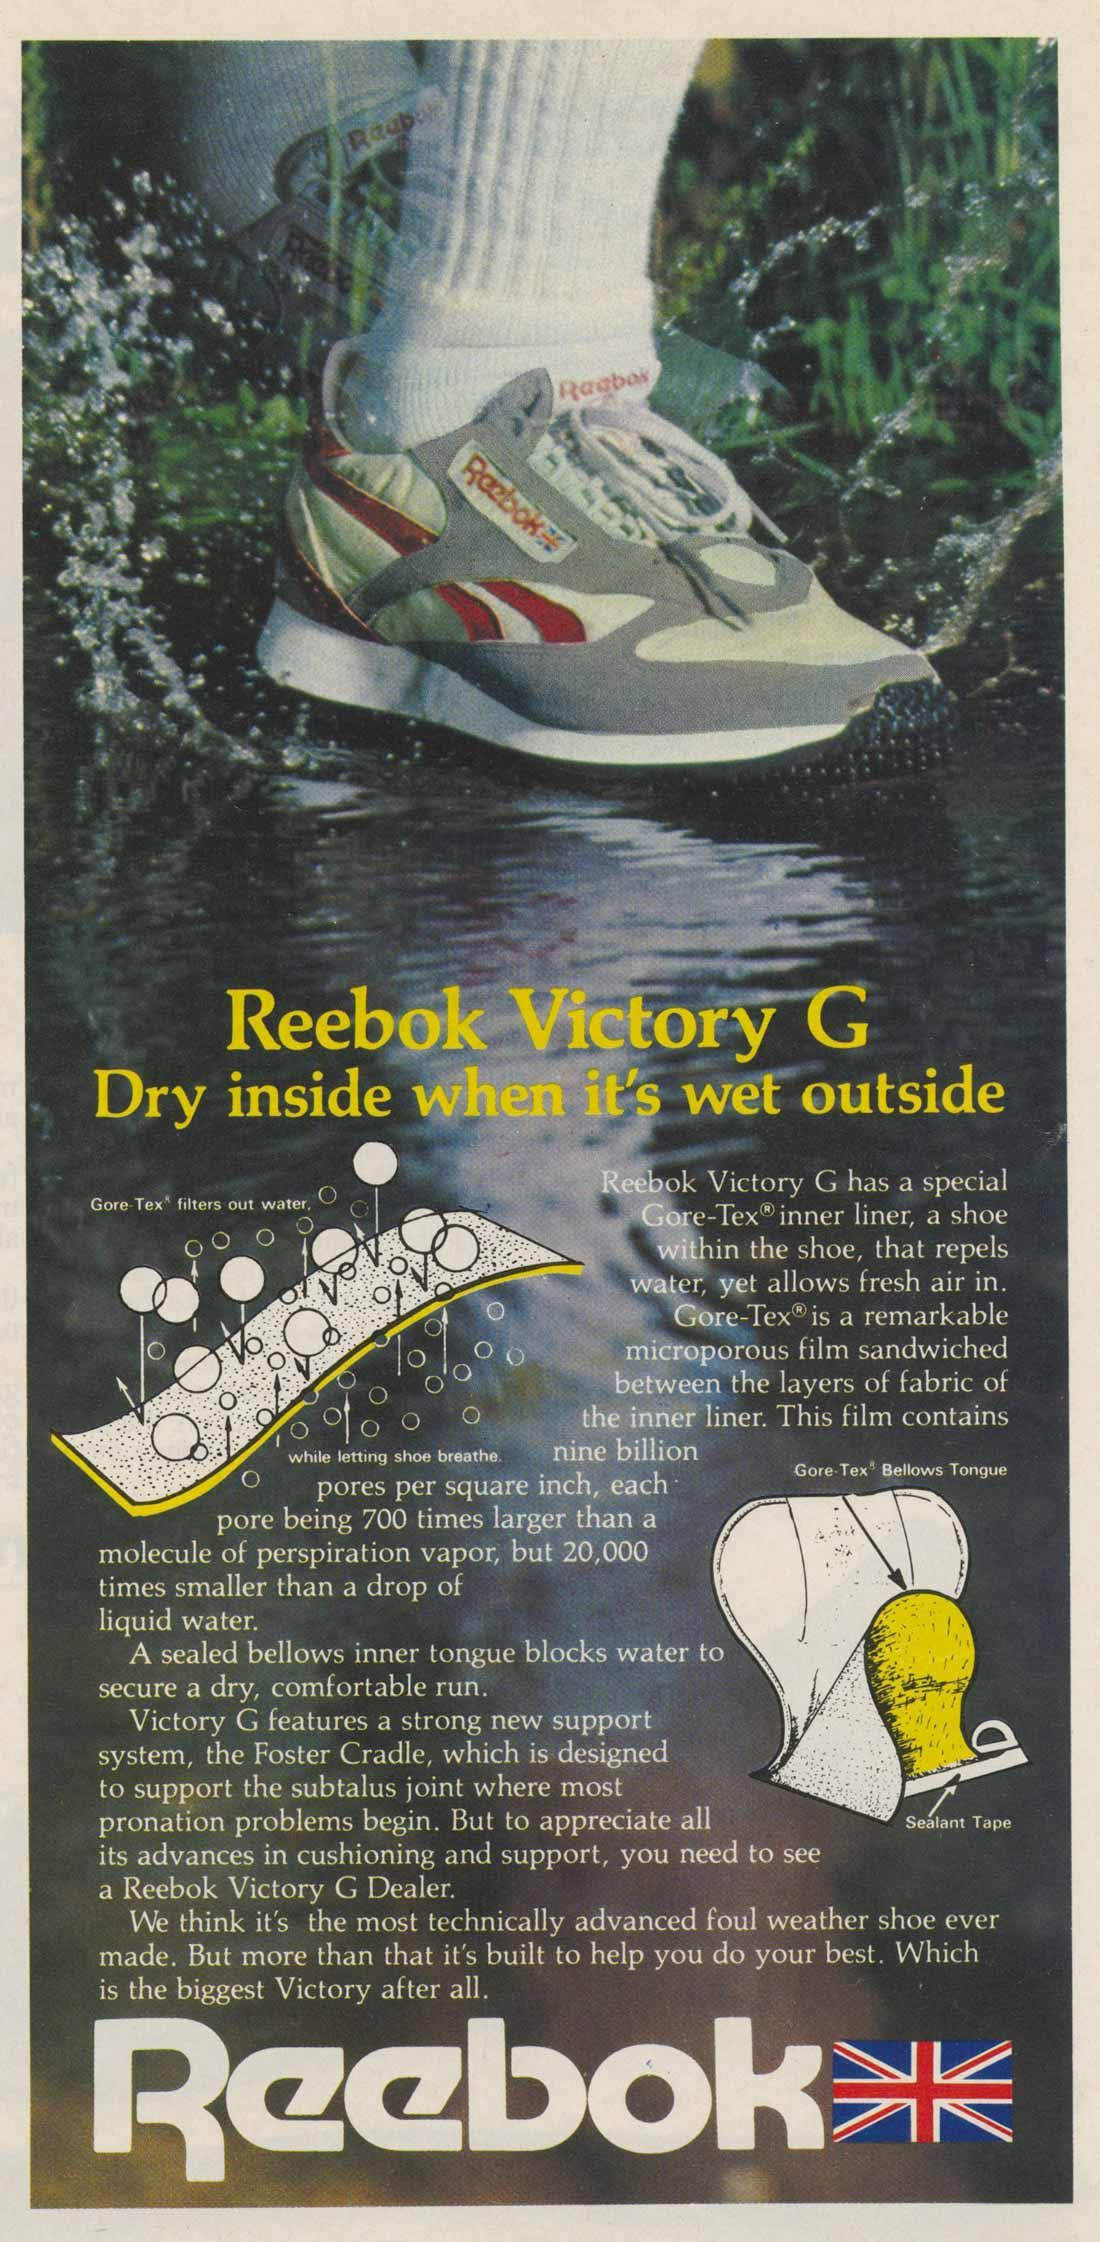 1982 – Reebok Victory G featuring GORE-TEX Inner Liner